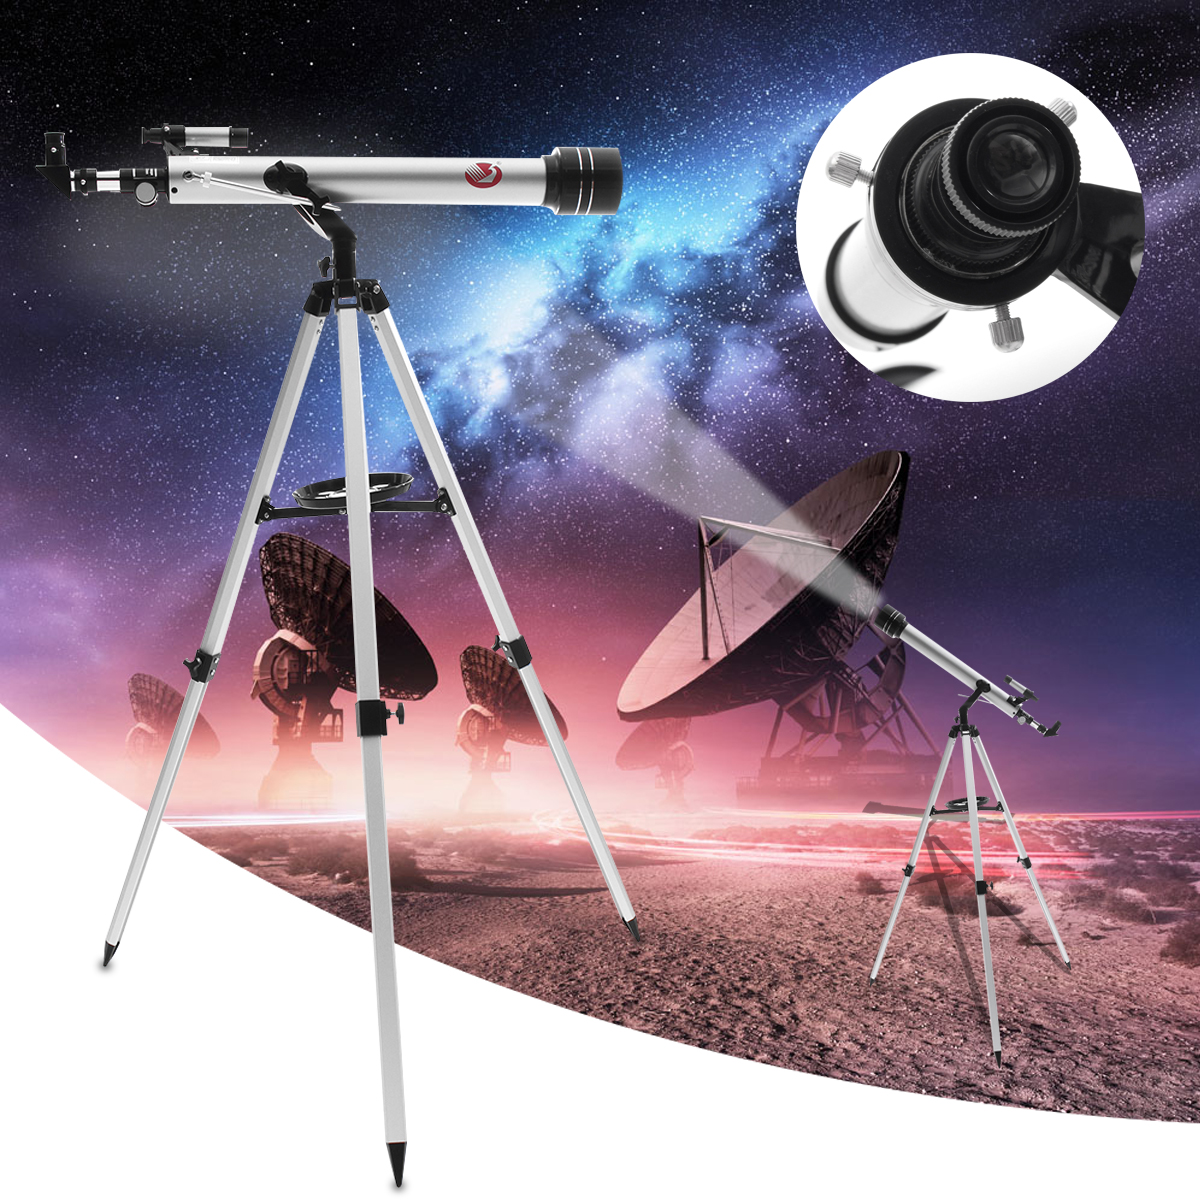 700/60mm 525X Professional Refractive Astronomical Telescope Tripod Eyepiece